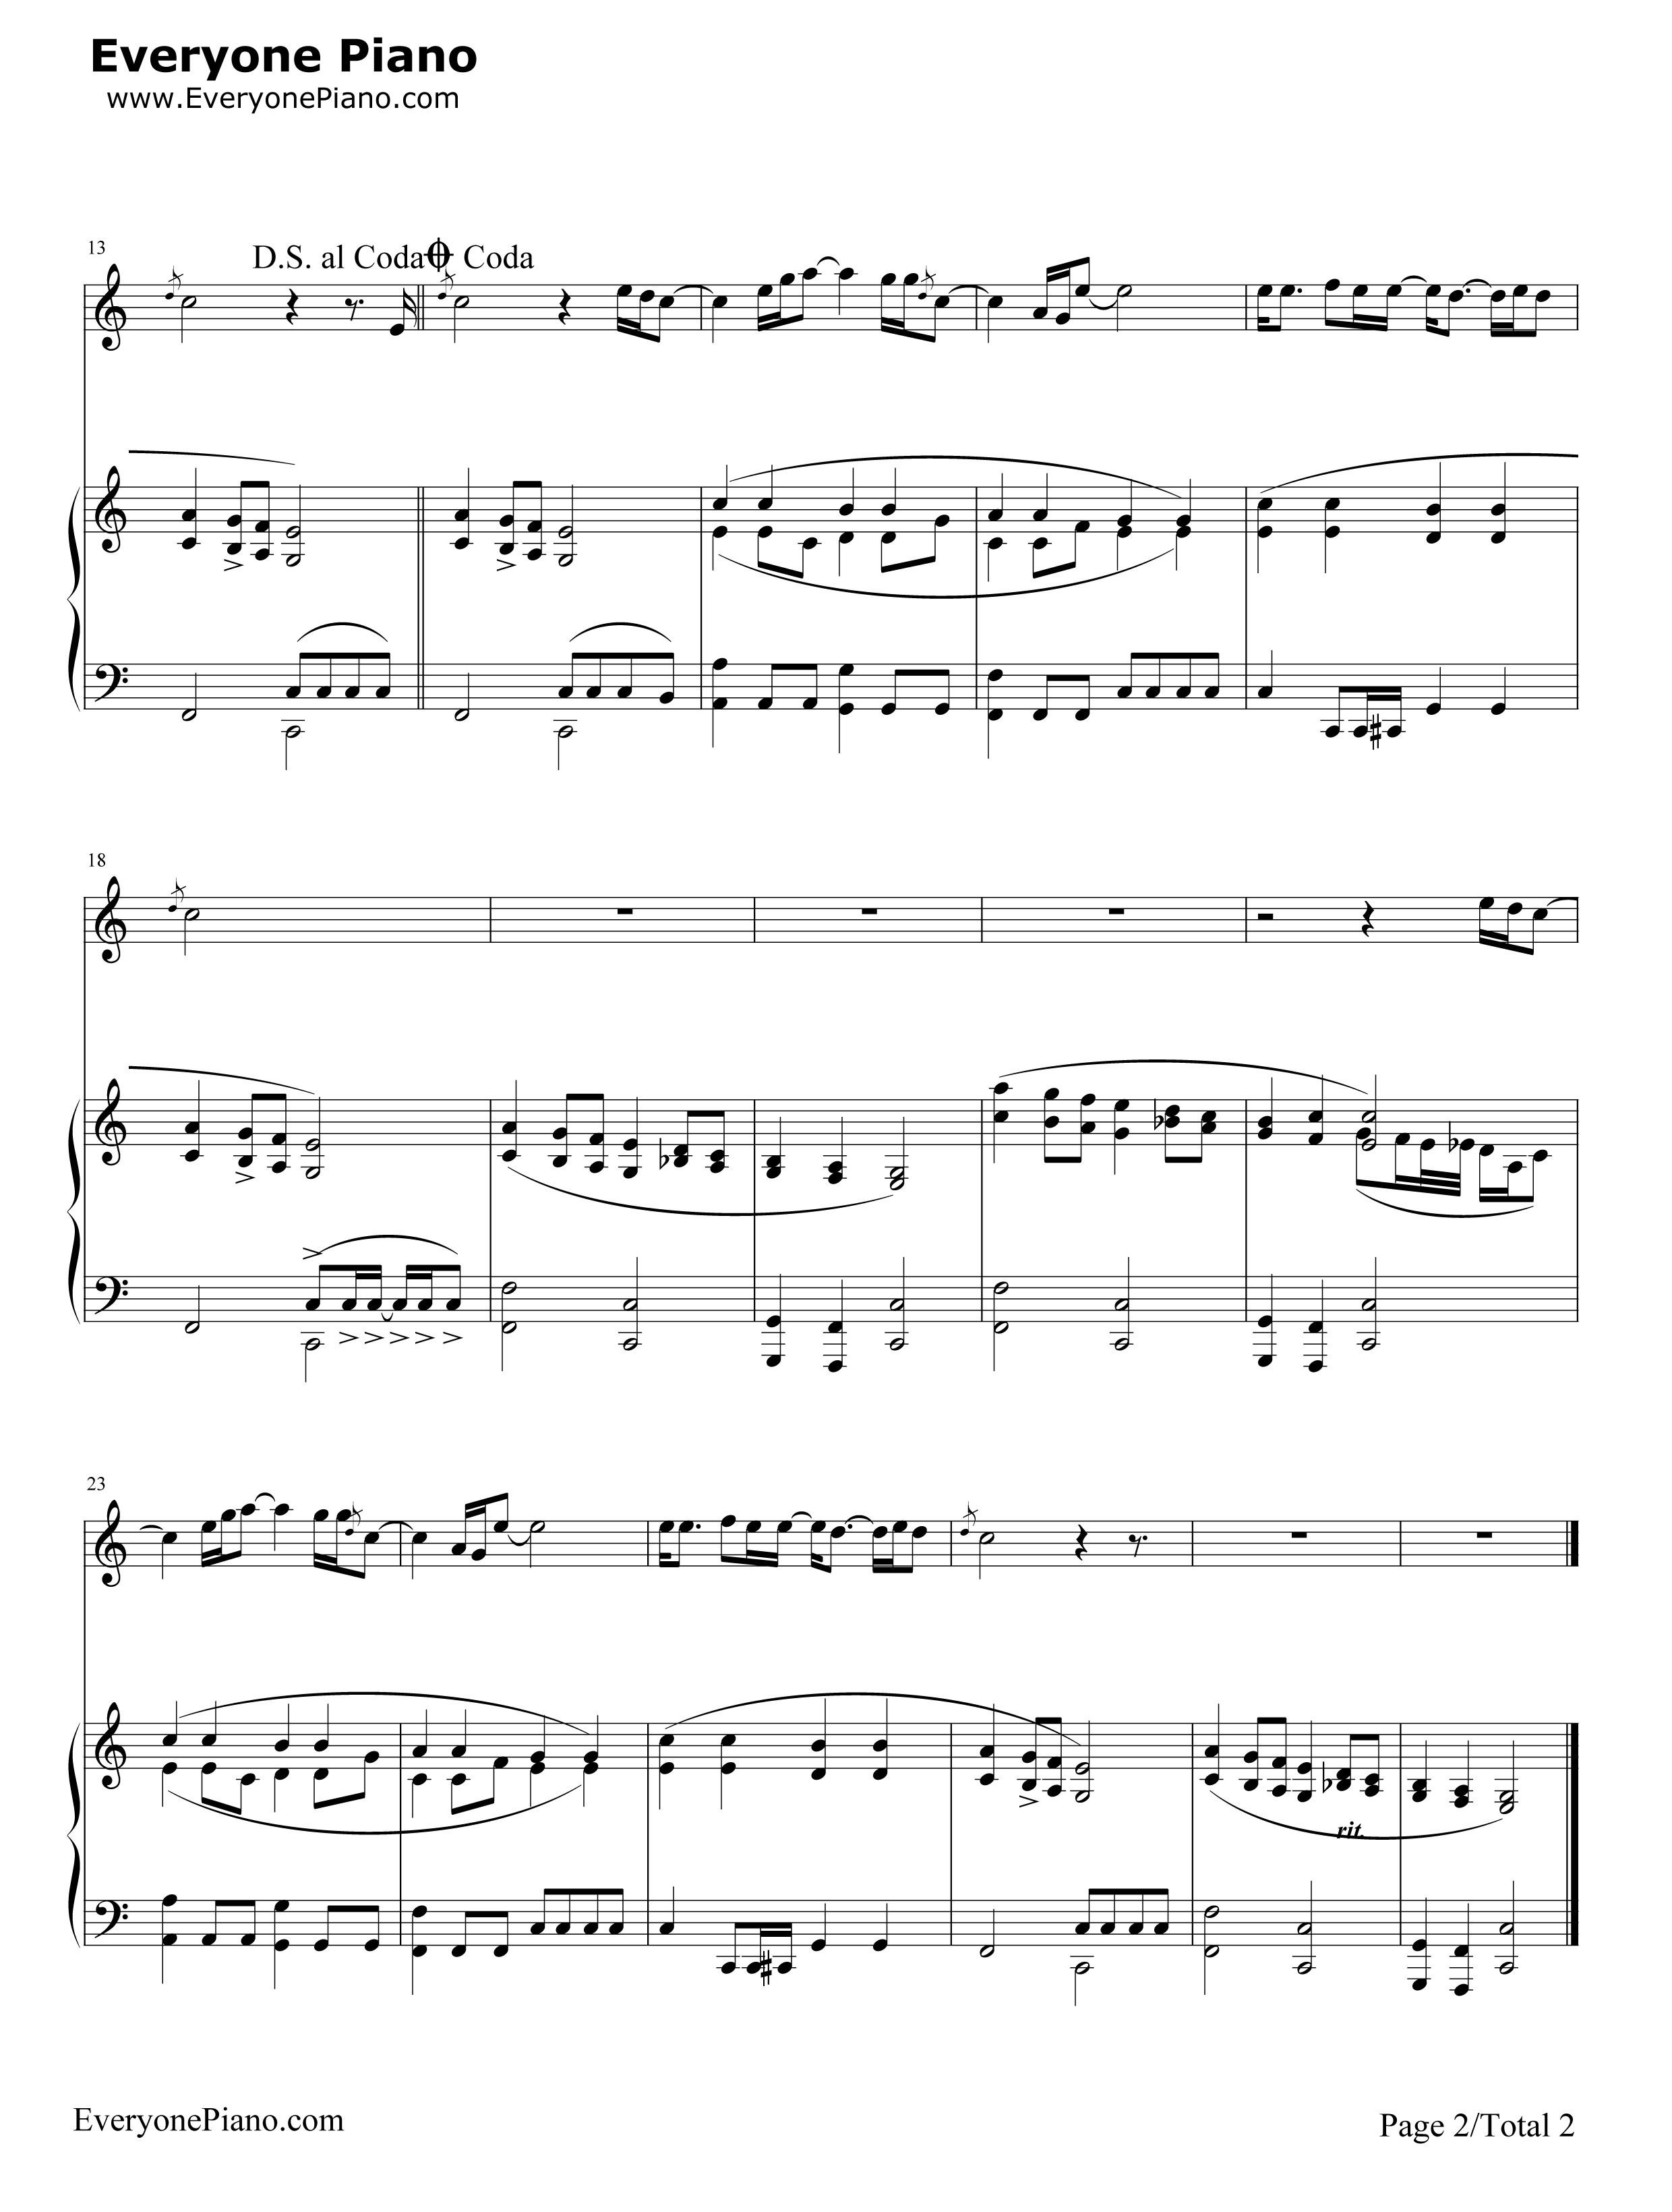 Pdf The Beatles Let It Be 33 13 Series Free Download - oc